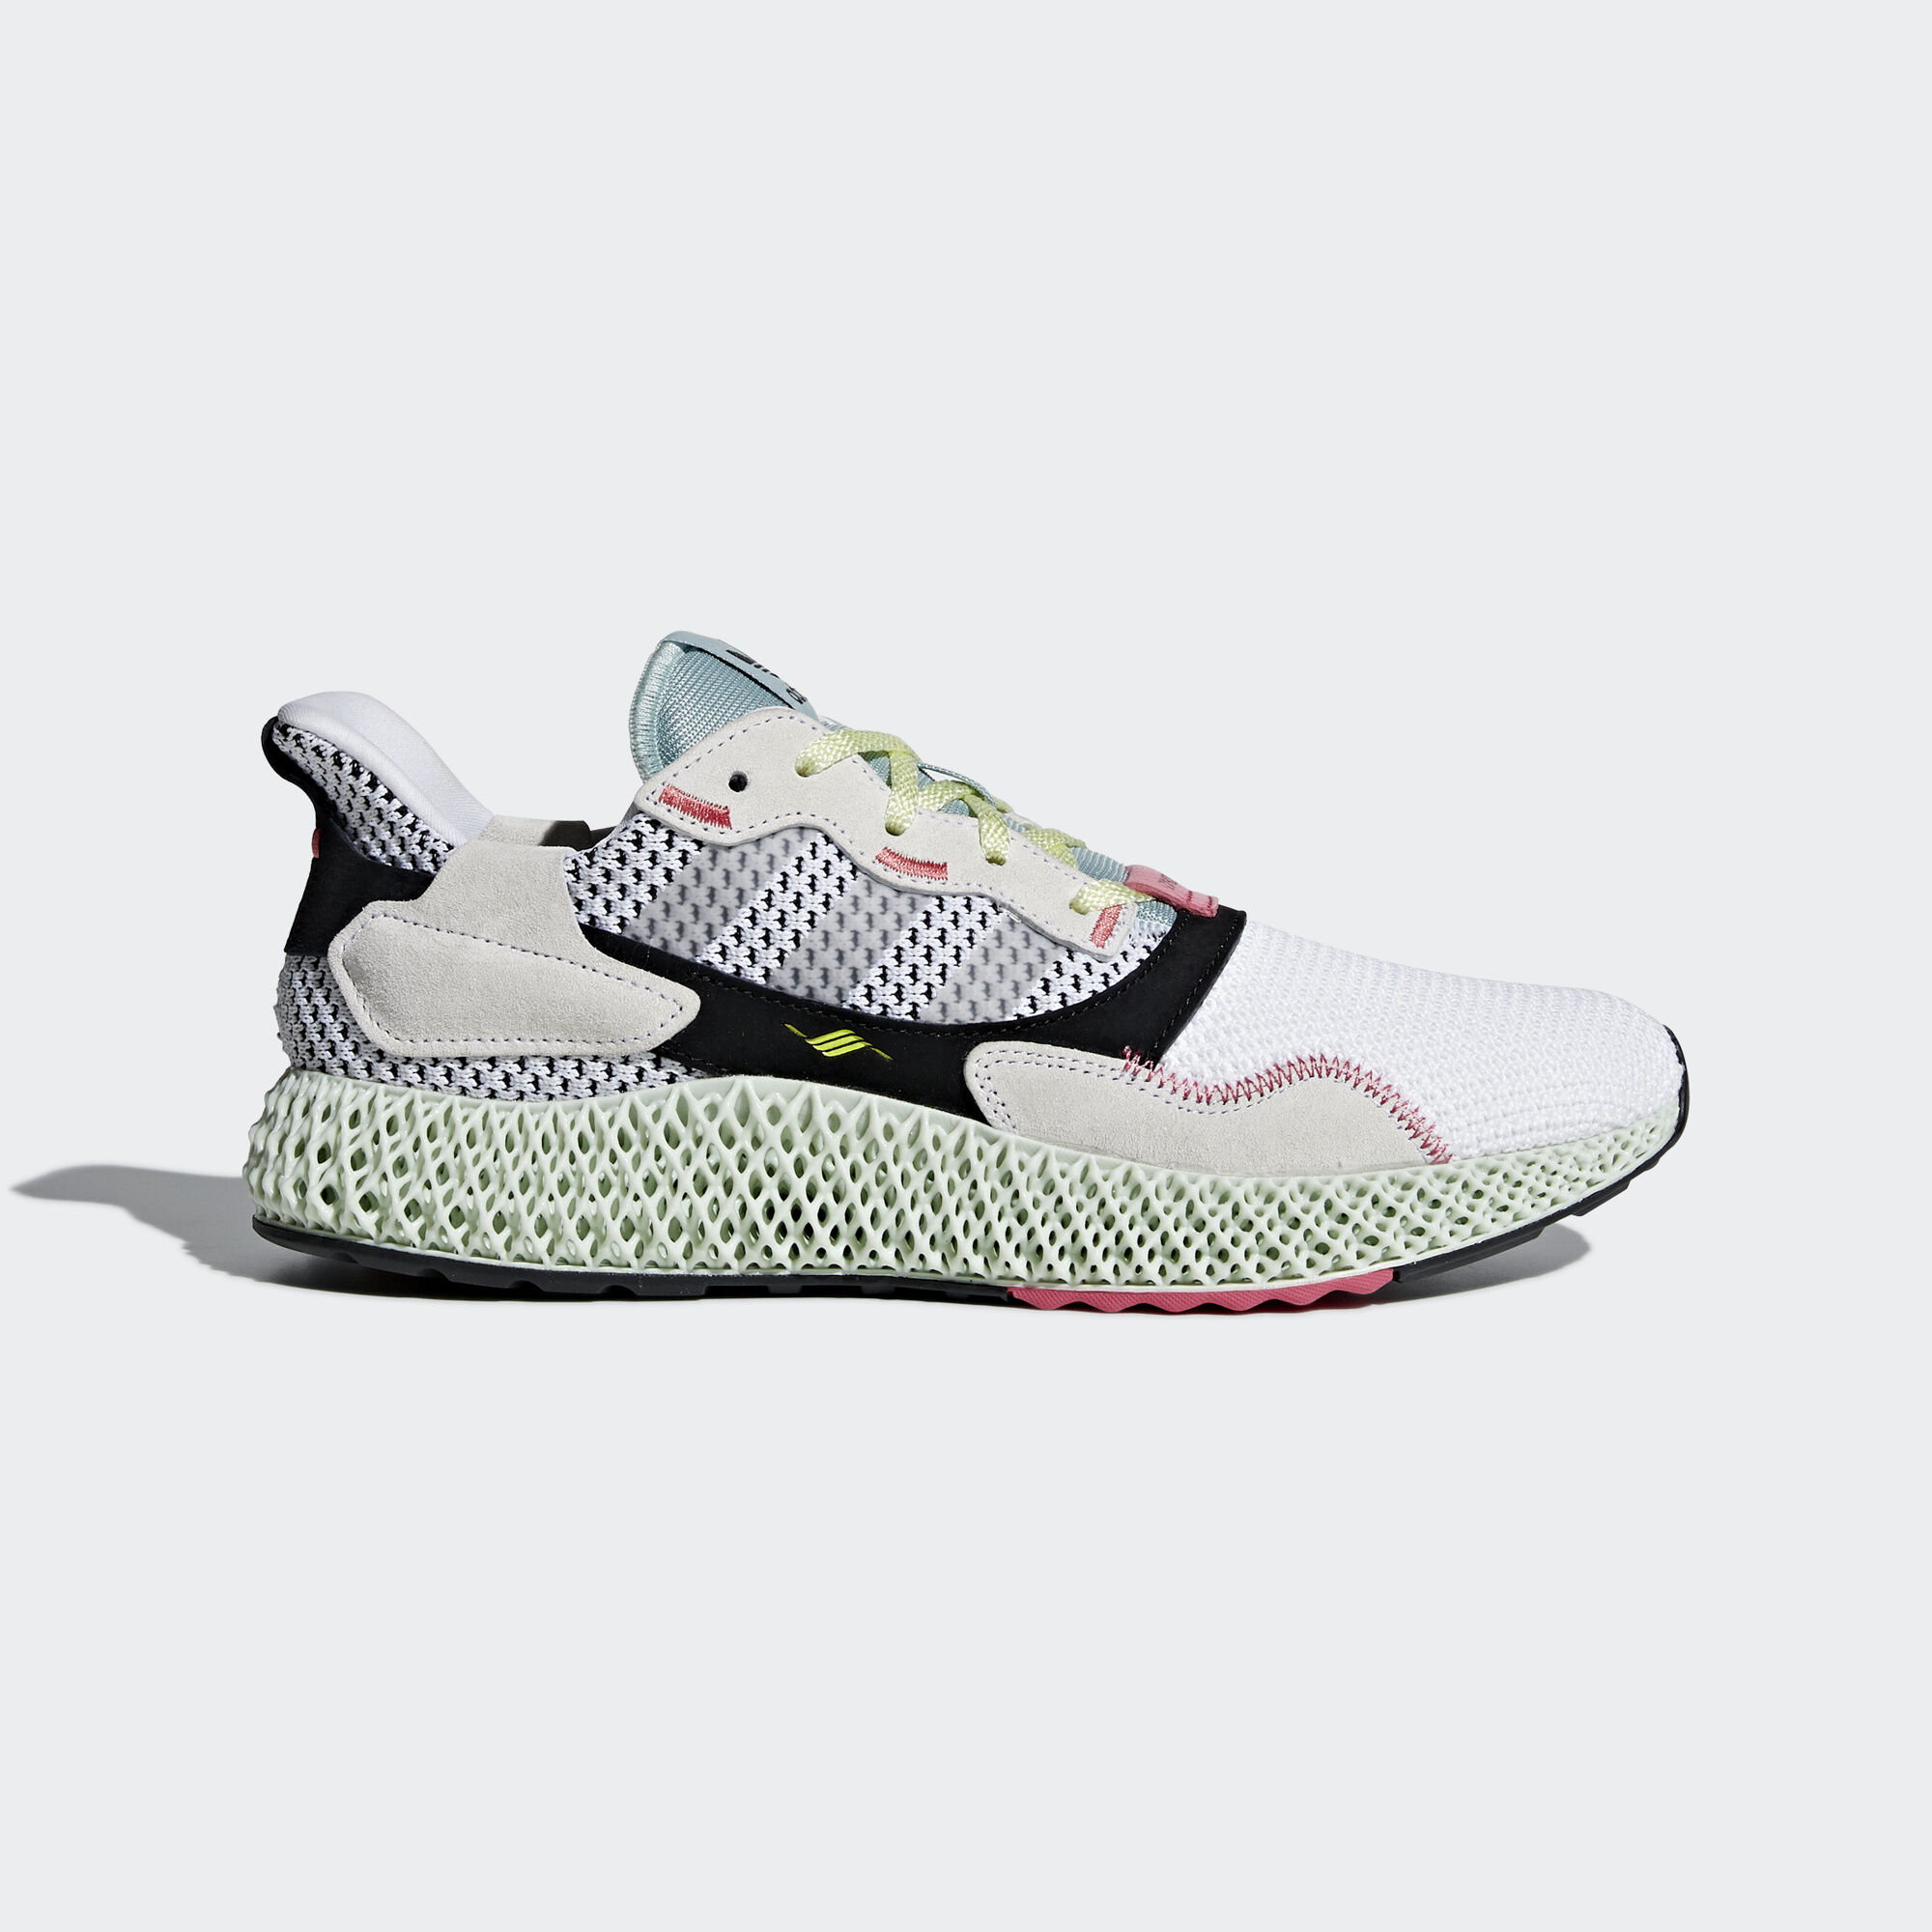 adidas - ZX 4000 4D Shoes Ftwr White   Grey Two   Linen Green B42203 c9db7b35a